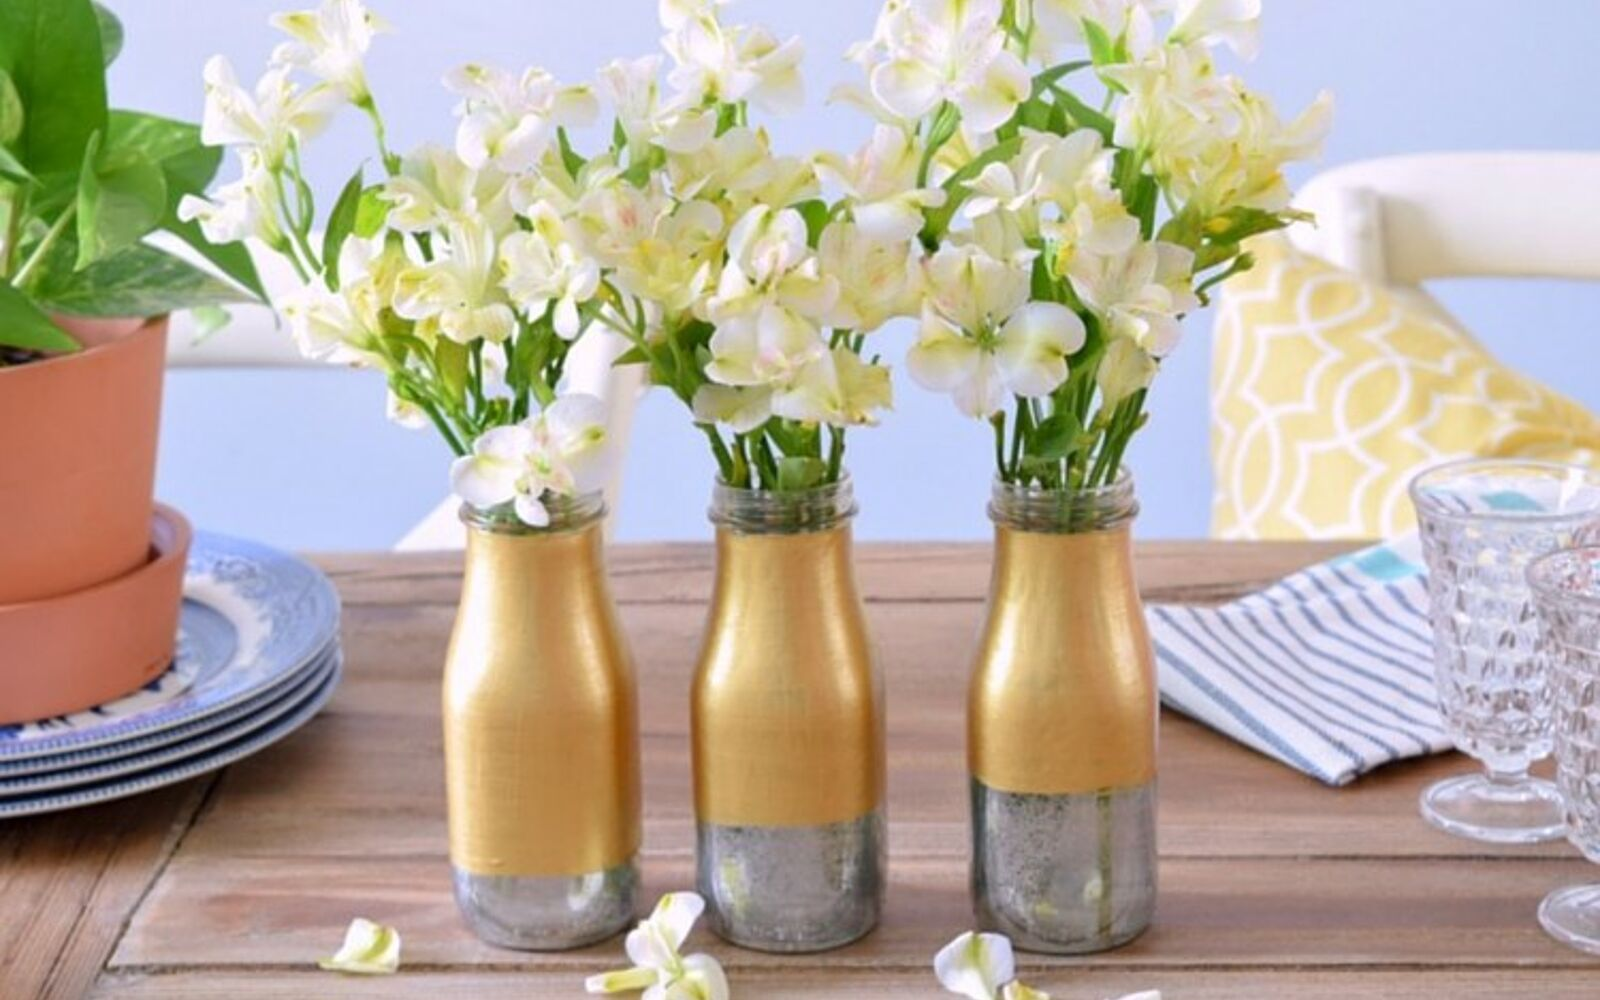 s 15 incredible vases you can make for your bestie on a budget, Paint A Two Toned Mercury Milk Bottle